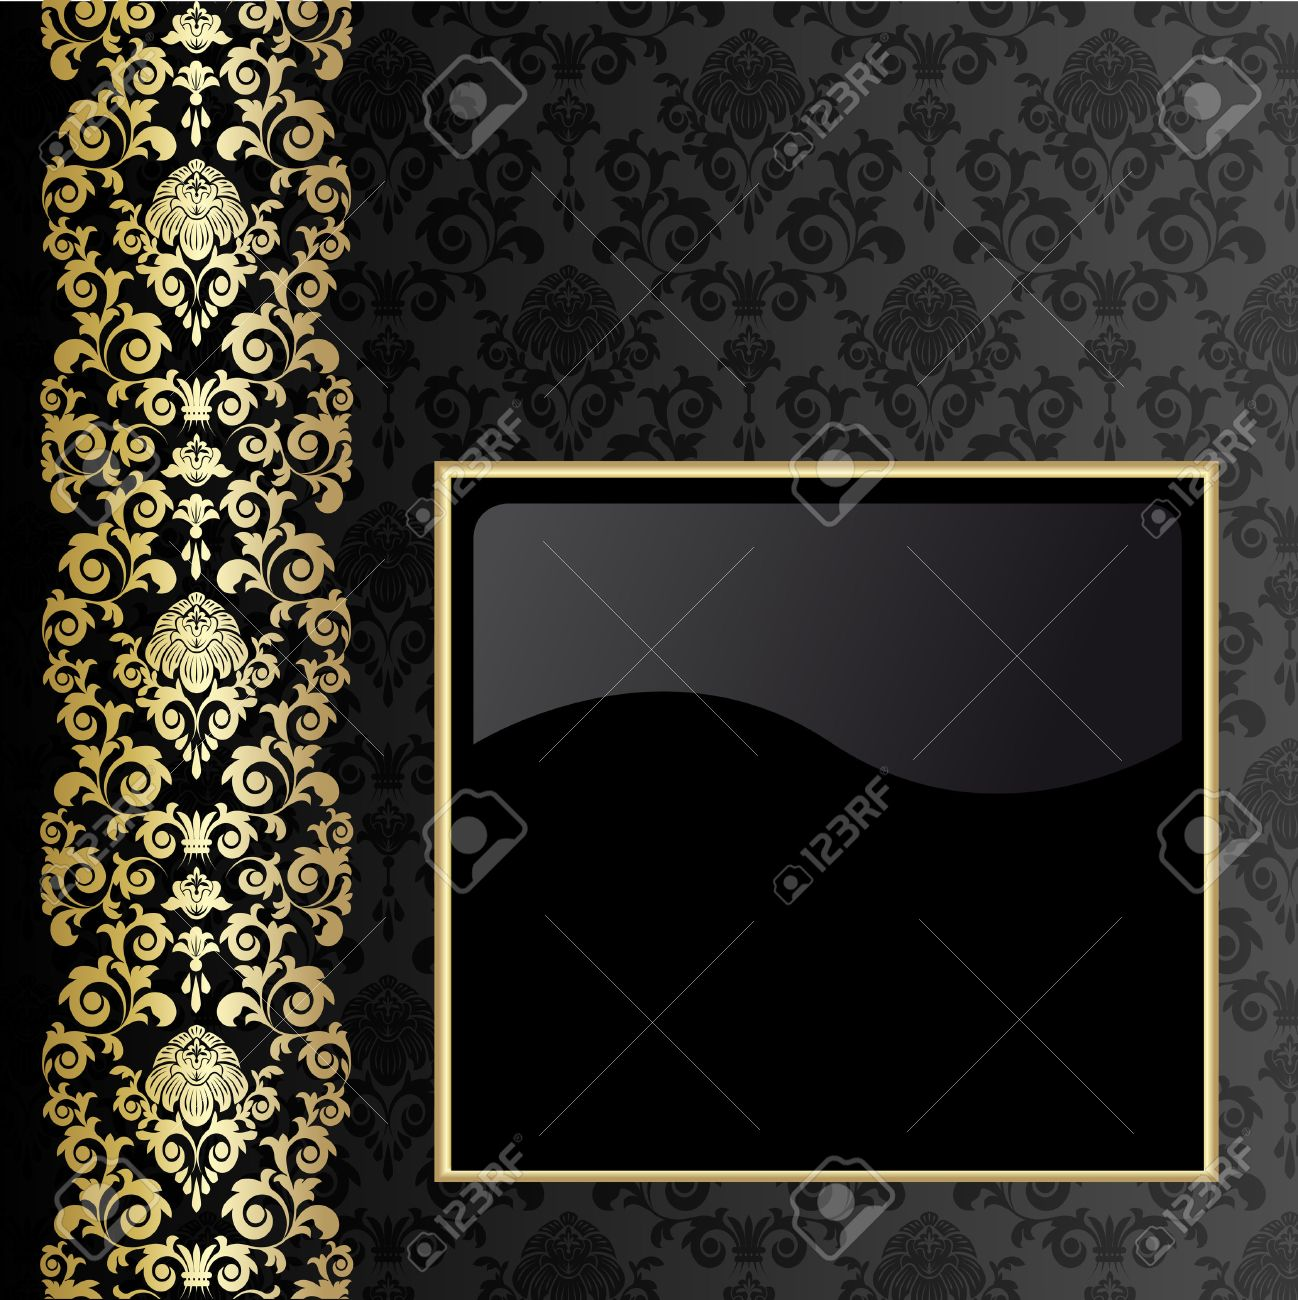 Black Background With Flowers And Leaves And Gold Frame Royalty